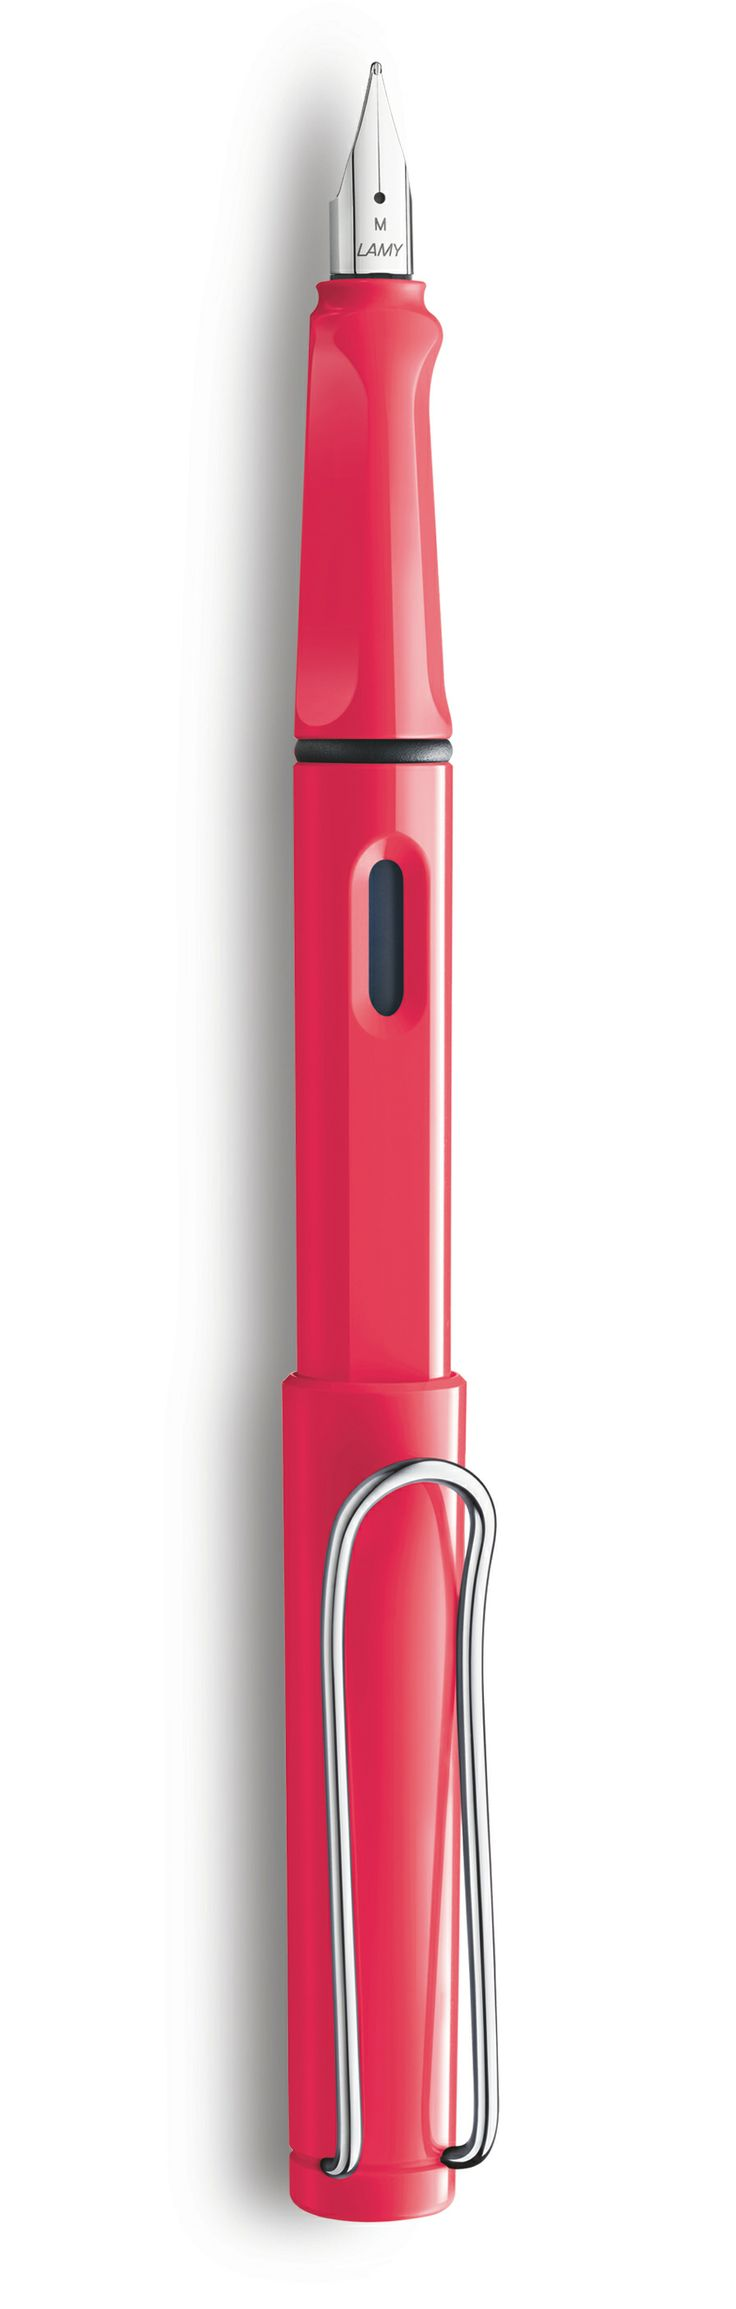 The newly announced 2014 Special Edition Lamy Safari in Neon Coral. Starting at $29.60. Please someone take me to a beach right now.